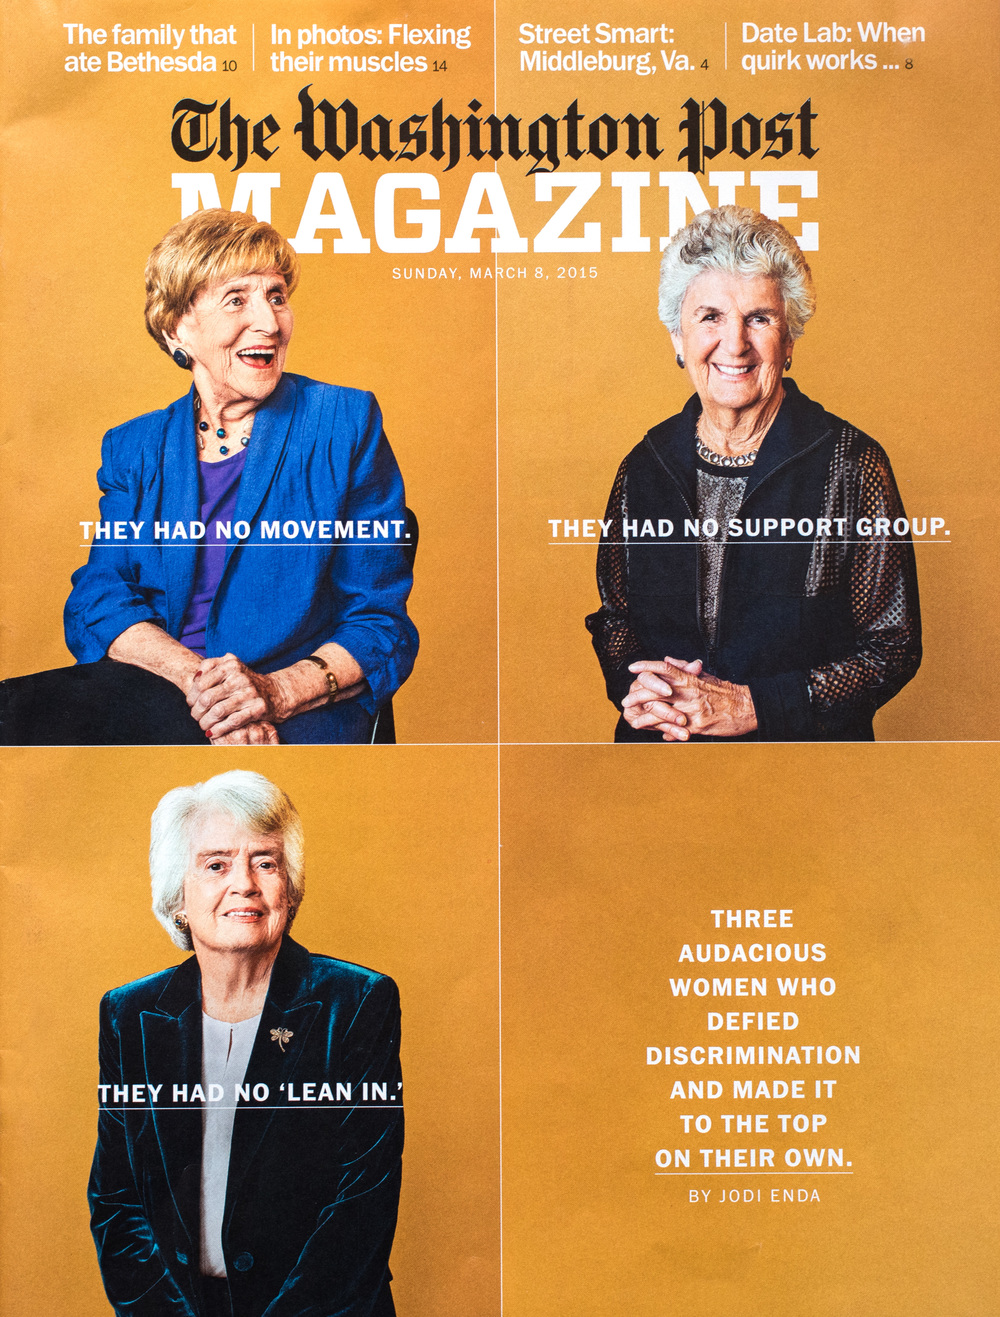 washington-post-magazine-women.jpg